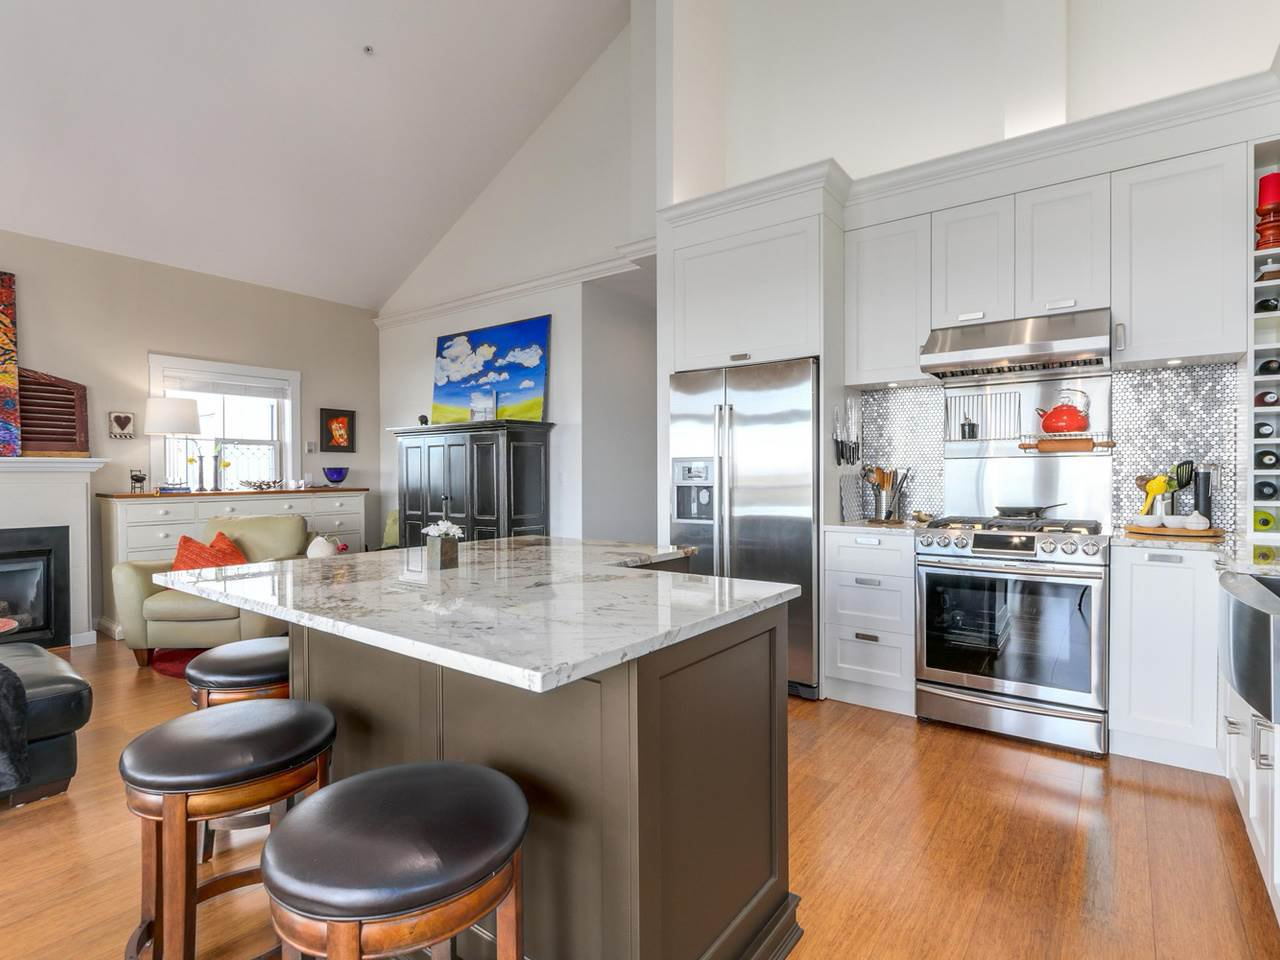 "Photo 5: Photos: 419 6233 LONDON Road in Richmond: Steveston South Condo for sale in ""LONDON STATION ONE"" : MLS®# R2133663"